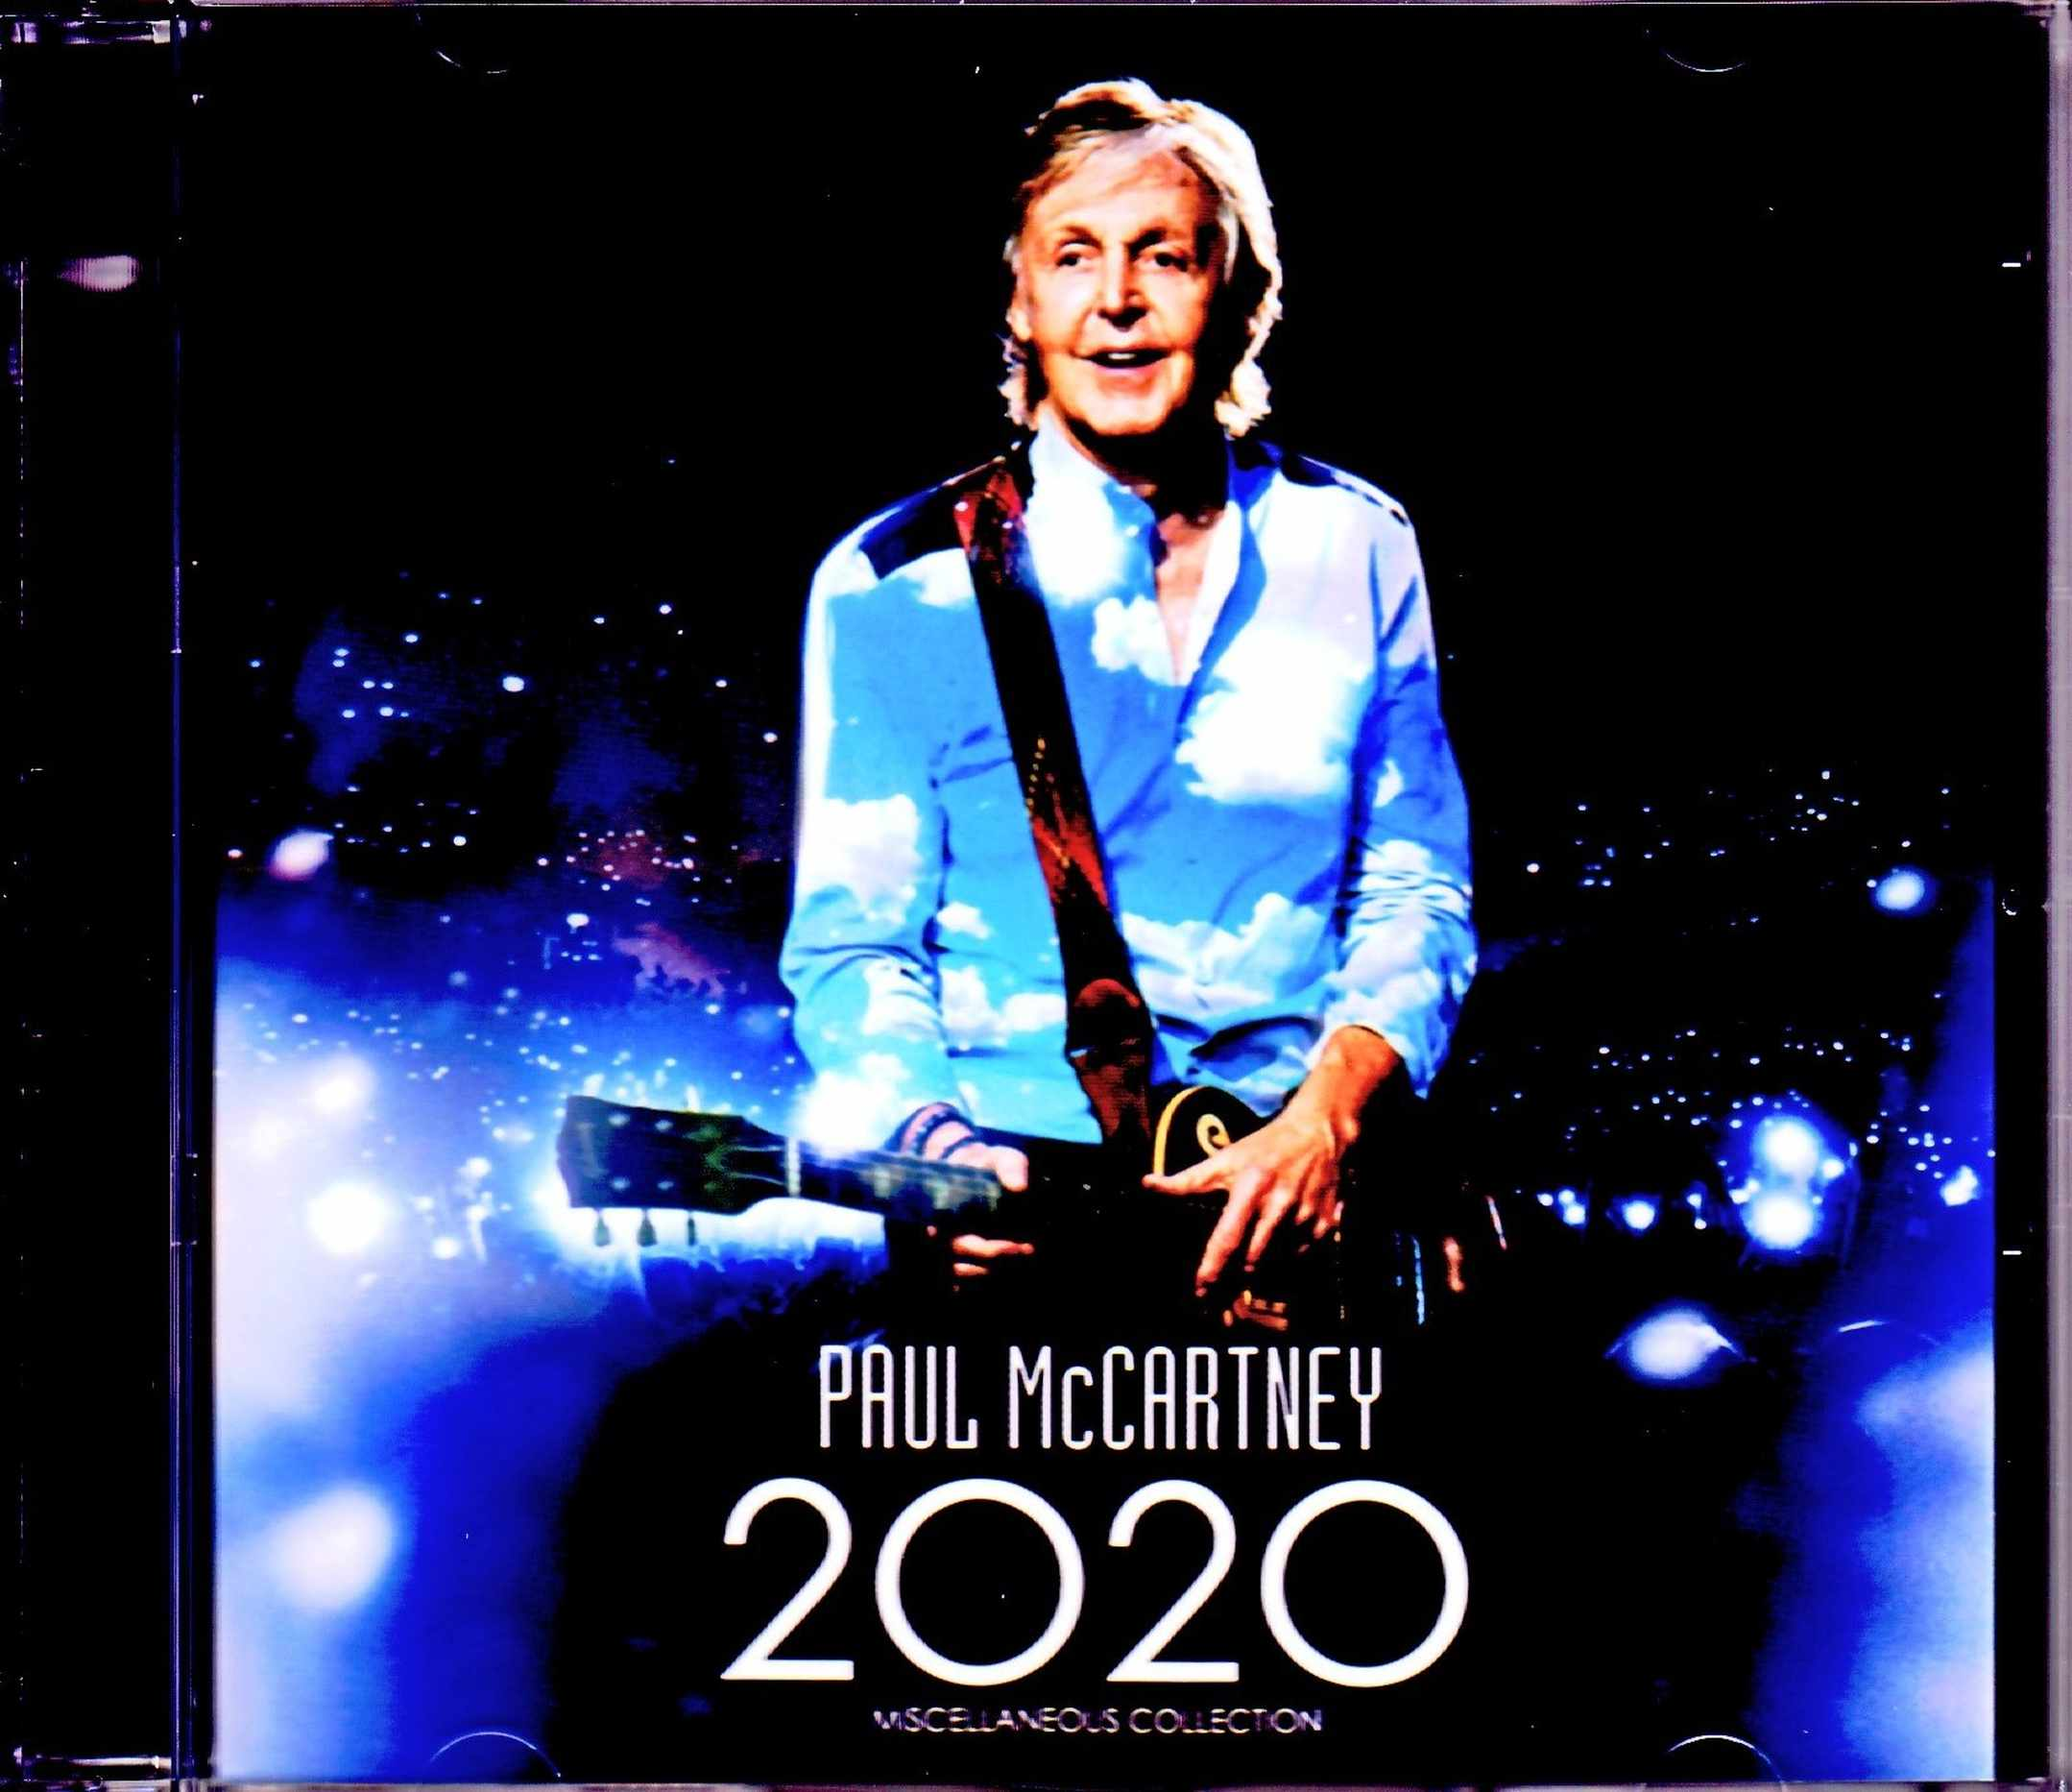 Paul McCartney ポール・マッカートニー/Miscellaneous Collection 2020